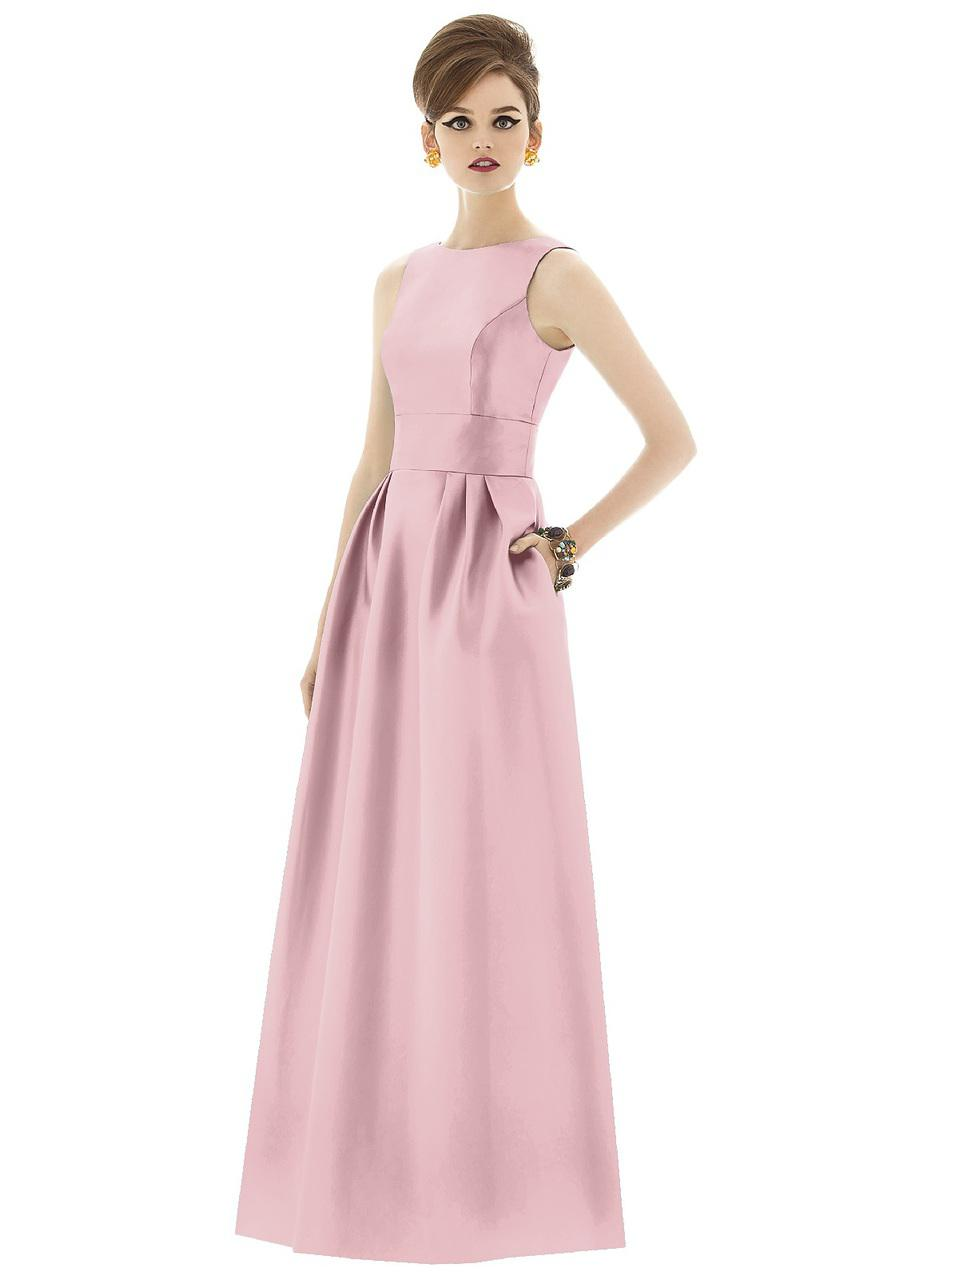 Alfred sung d bridesmaid dress in blossom in pink save 13 lyst bridesmaid dress in blossom lyst view fullscreen ombrellifo Gallery